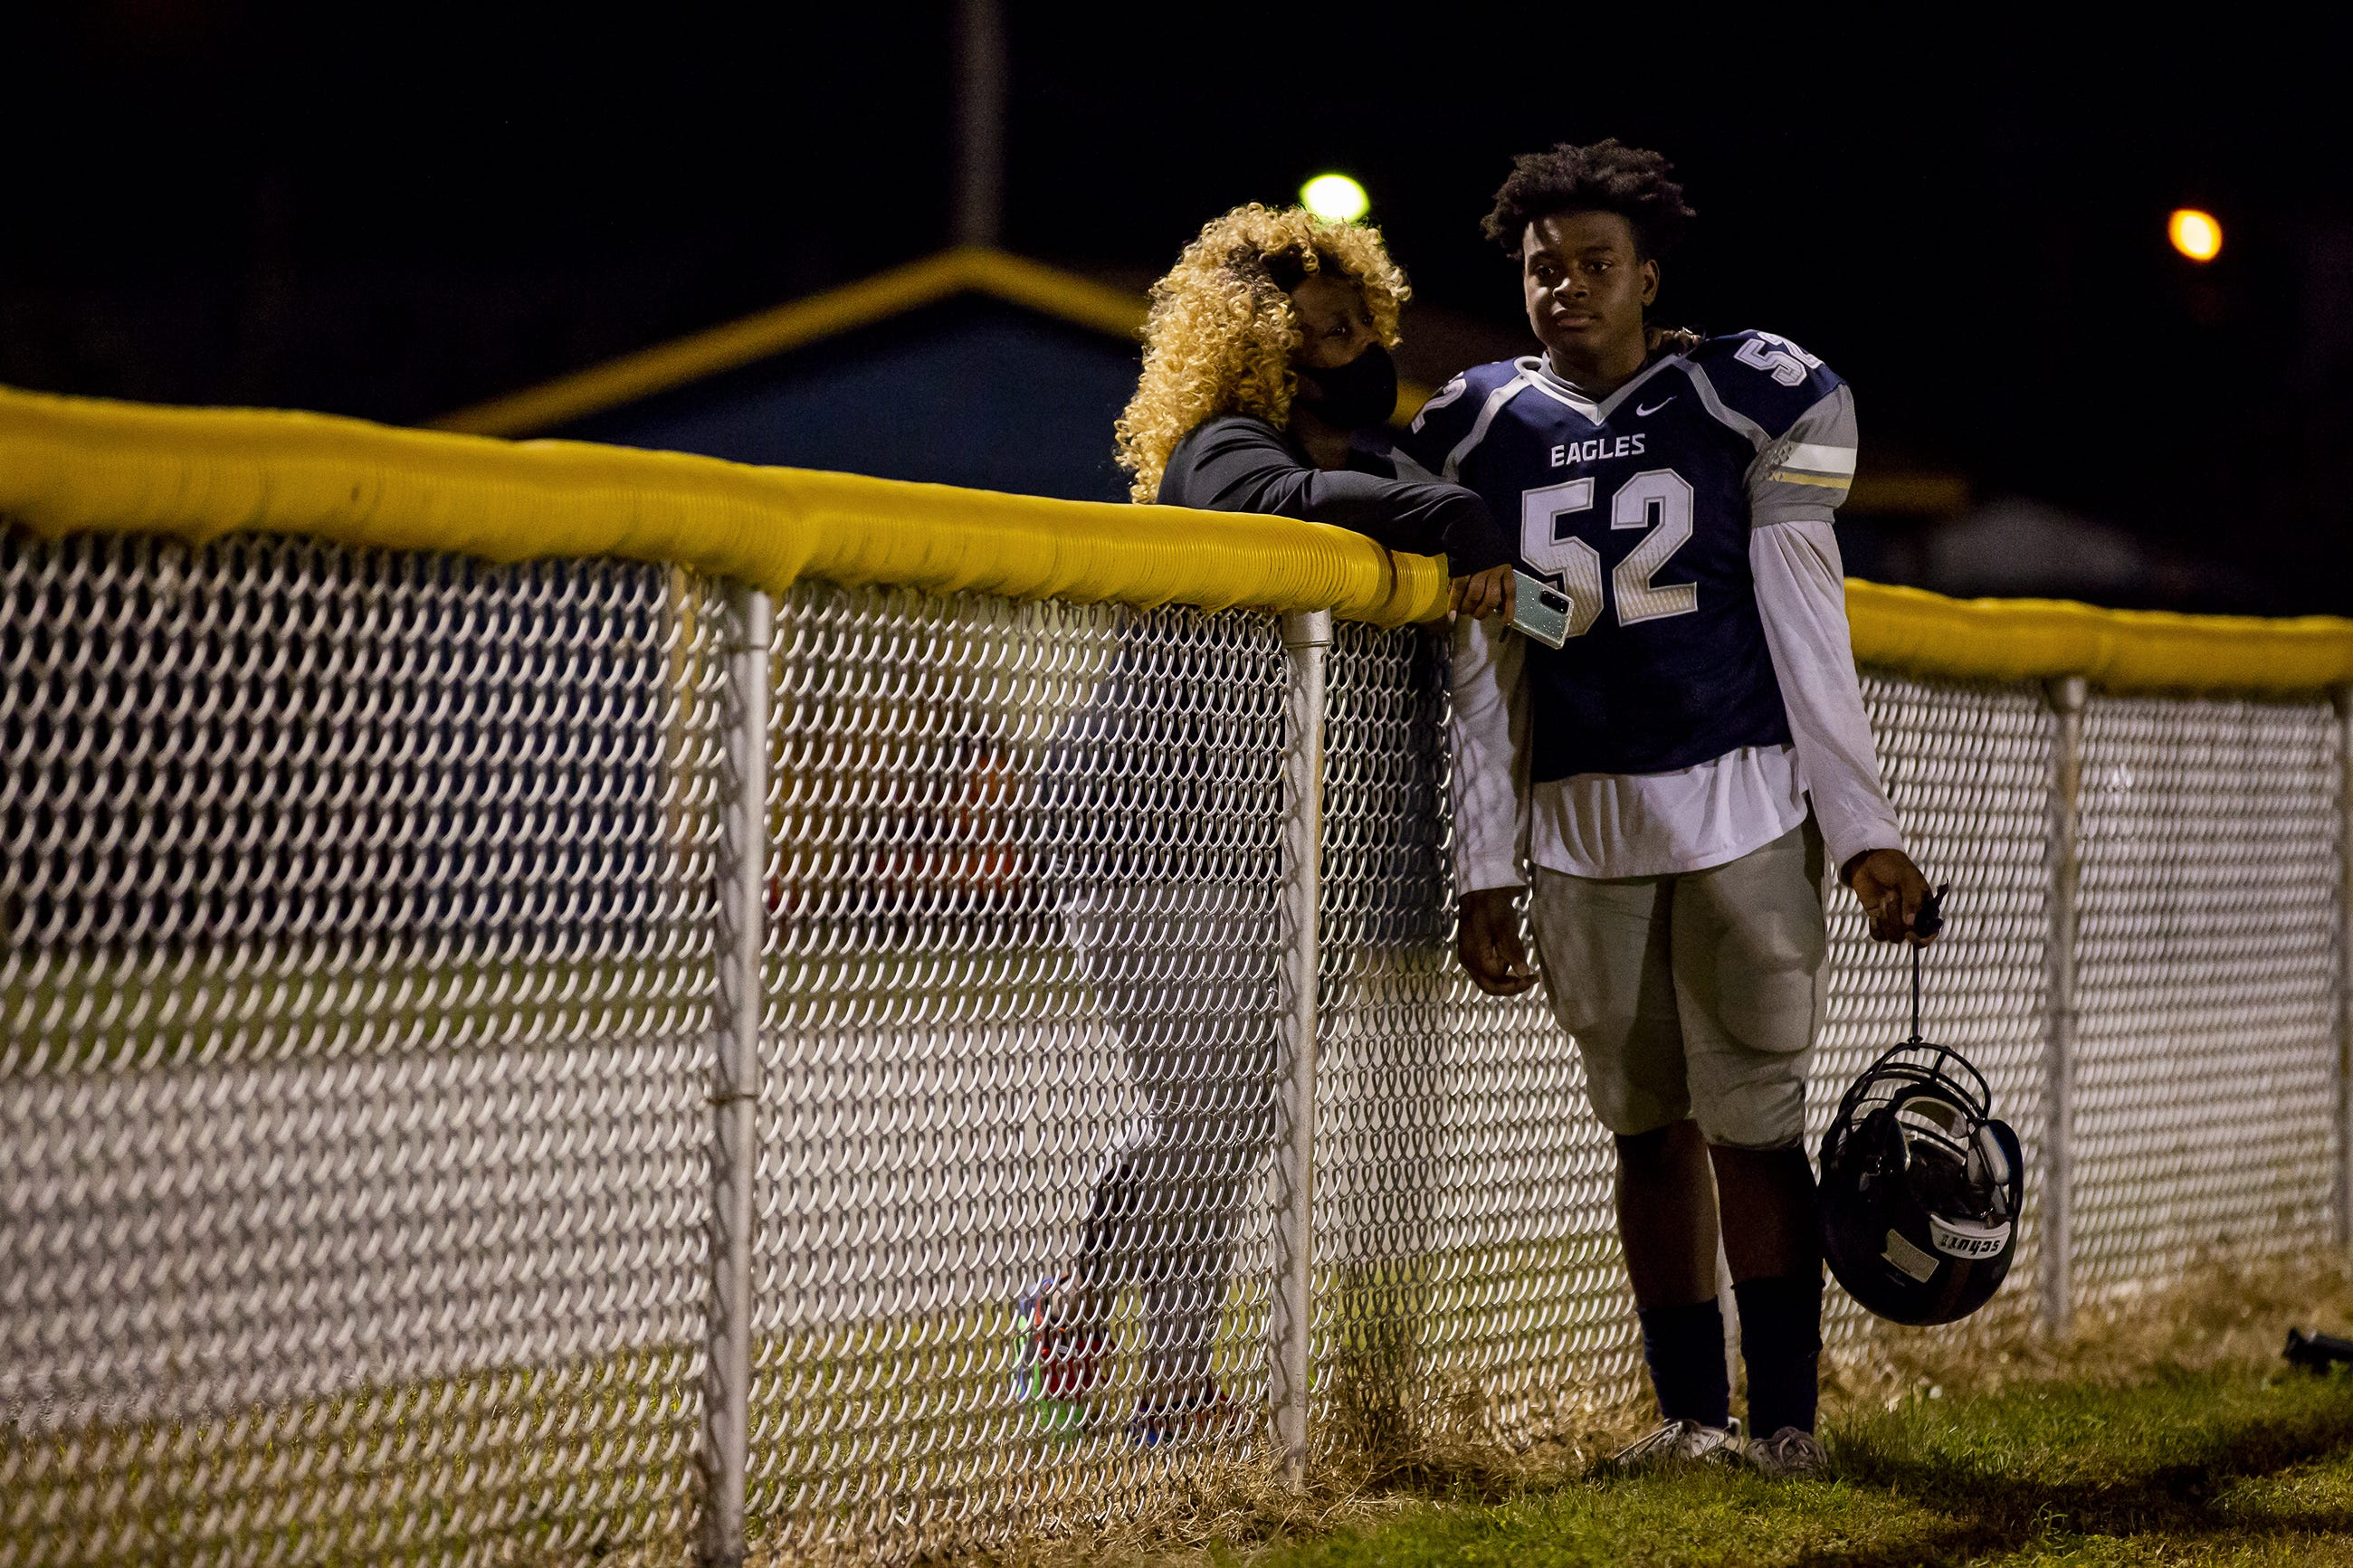 Schard Kelly encourages her son Juan-tay Watters after Shawnee lost to Jackson County on Oct. 2, 2020.